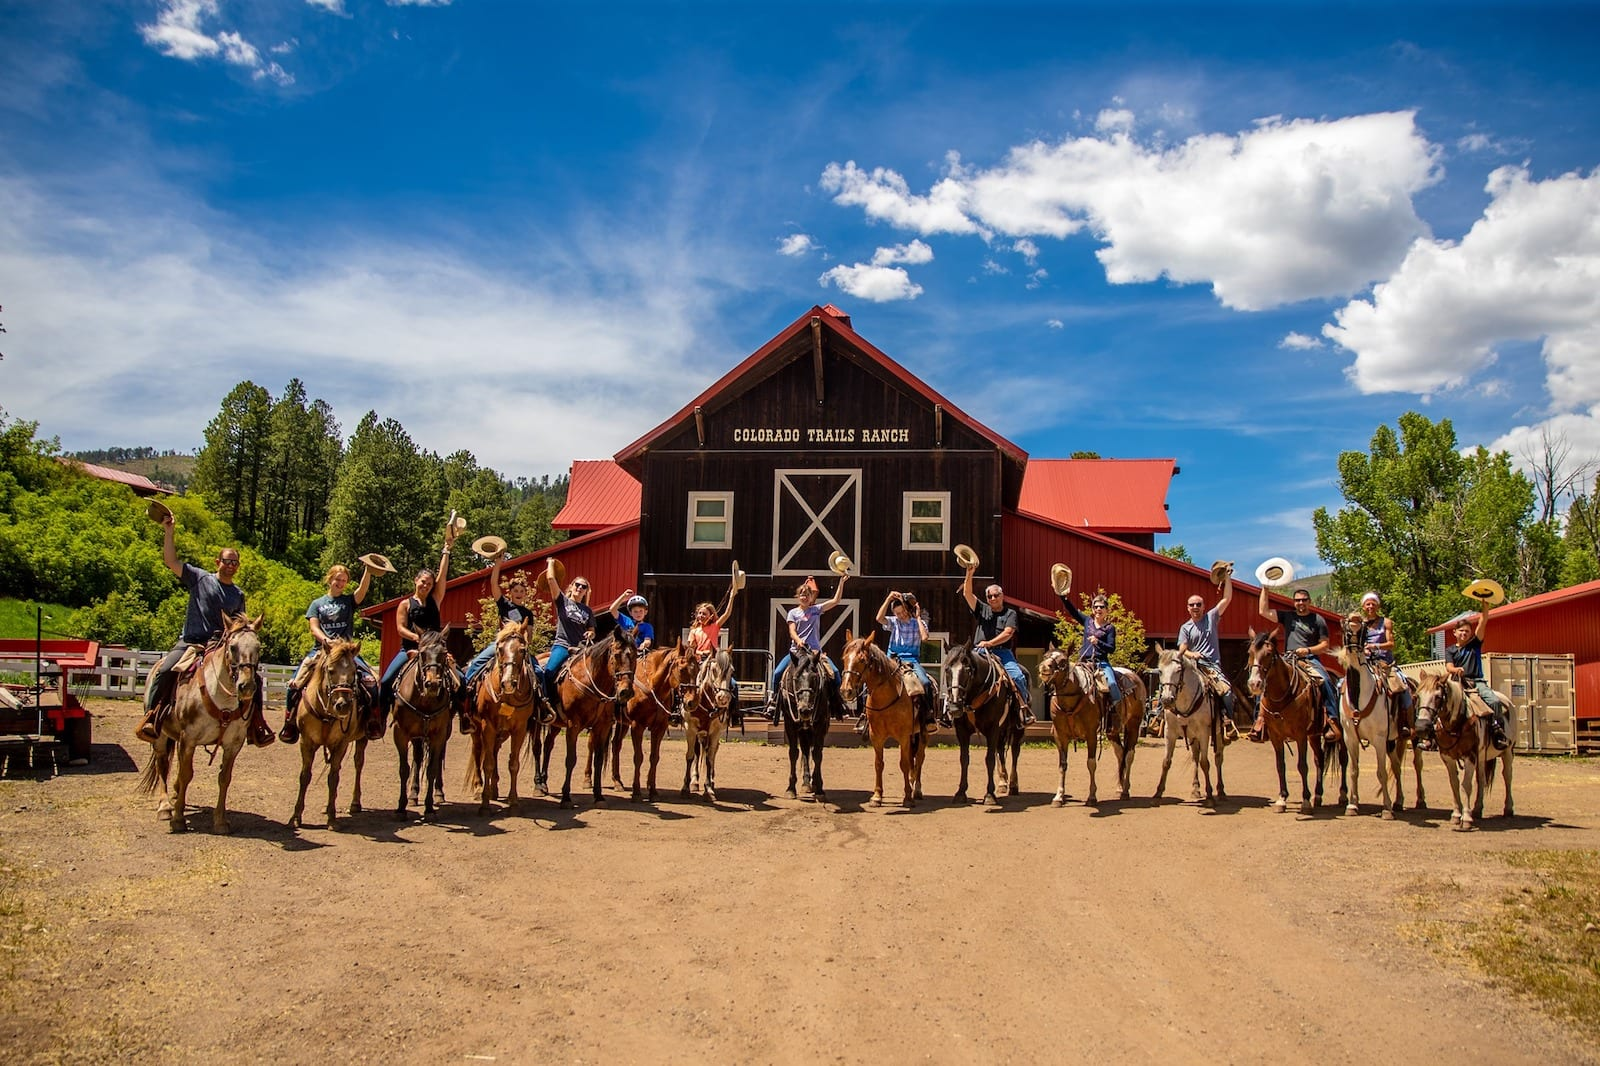 Image of visitors on their horses, raising their hats at Colorado Trails Ranch, CO